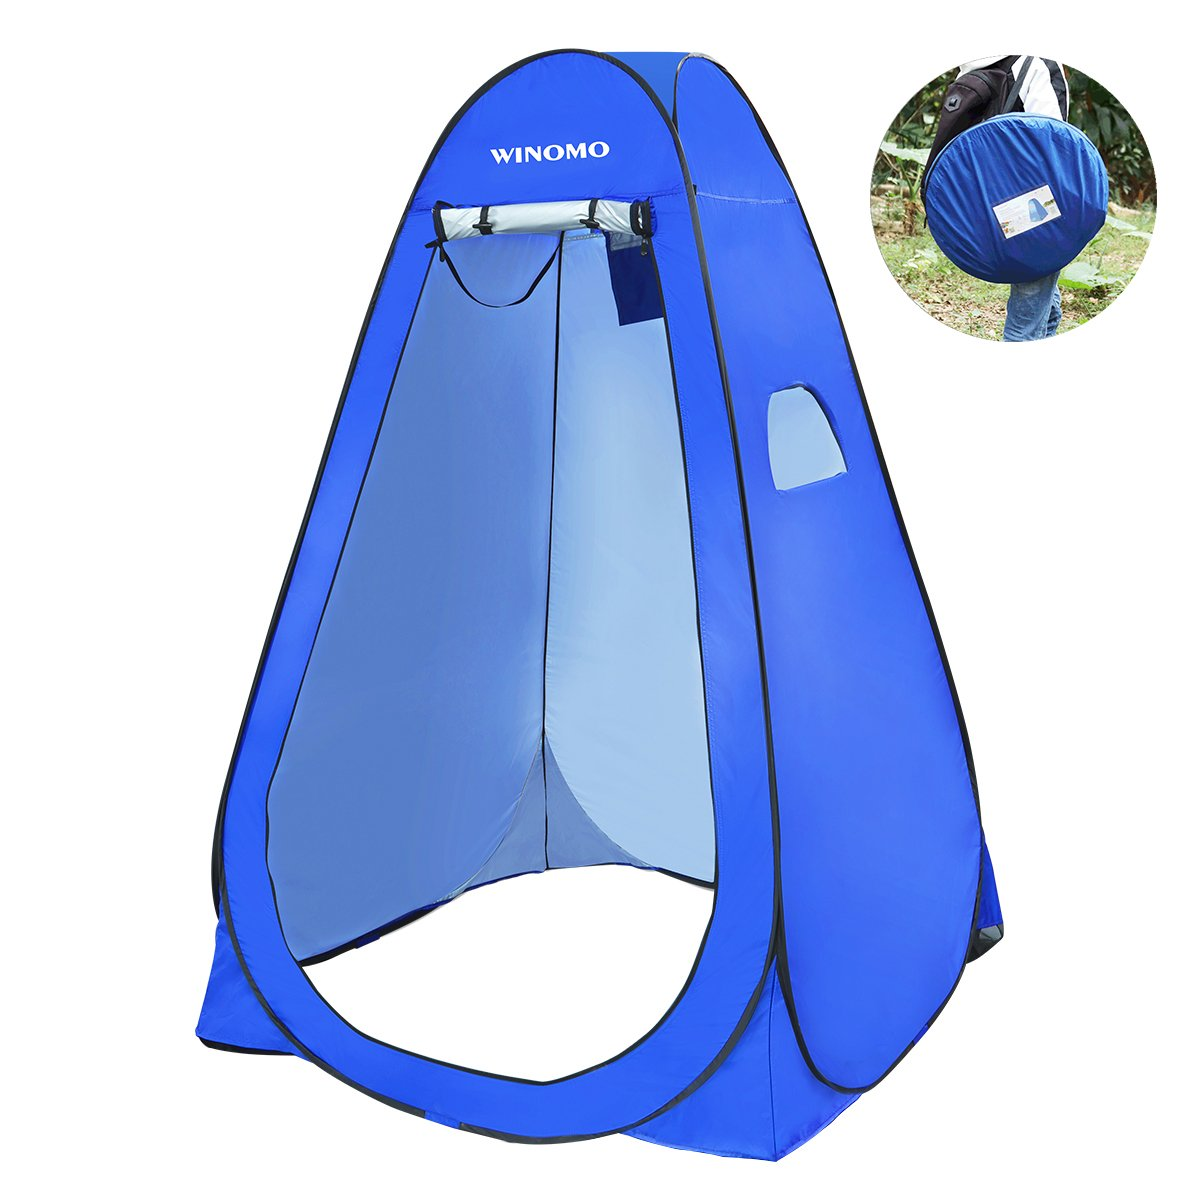 WINOMO Pop Up Shower Tent Portable Changing Room Privacy Shelter with Carry Bag for Camping Hiking Beach Toilet